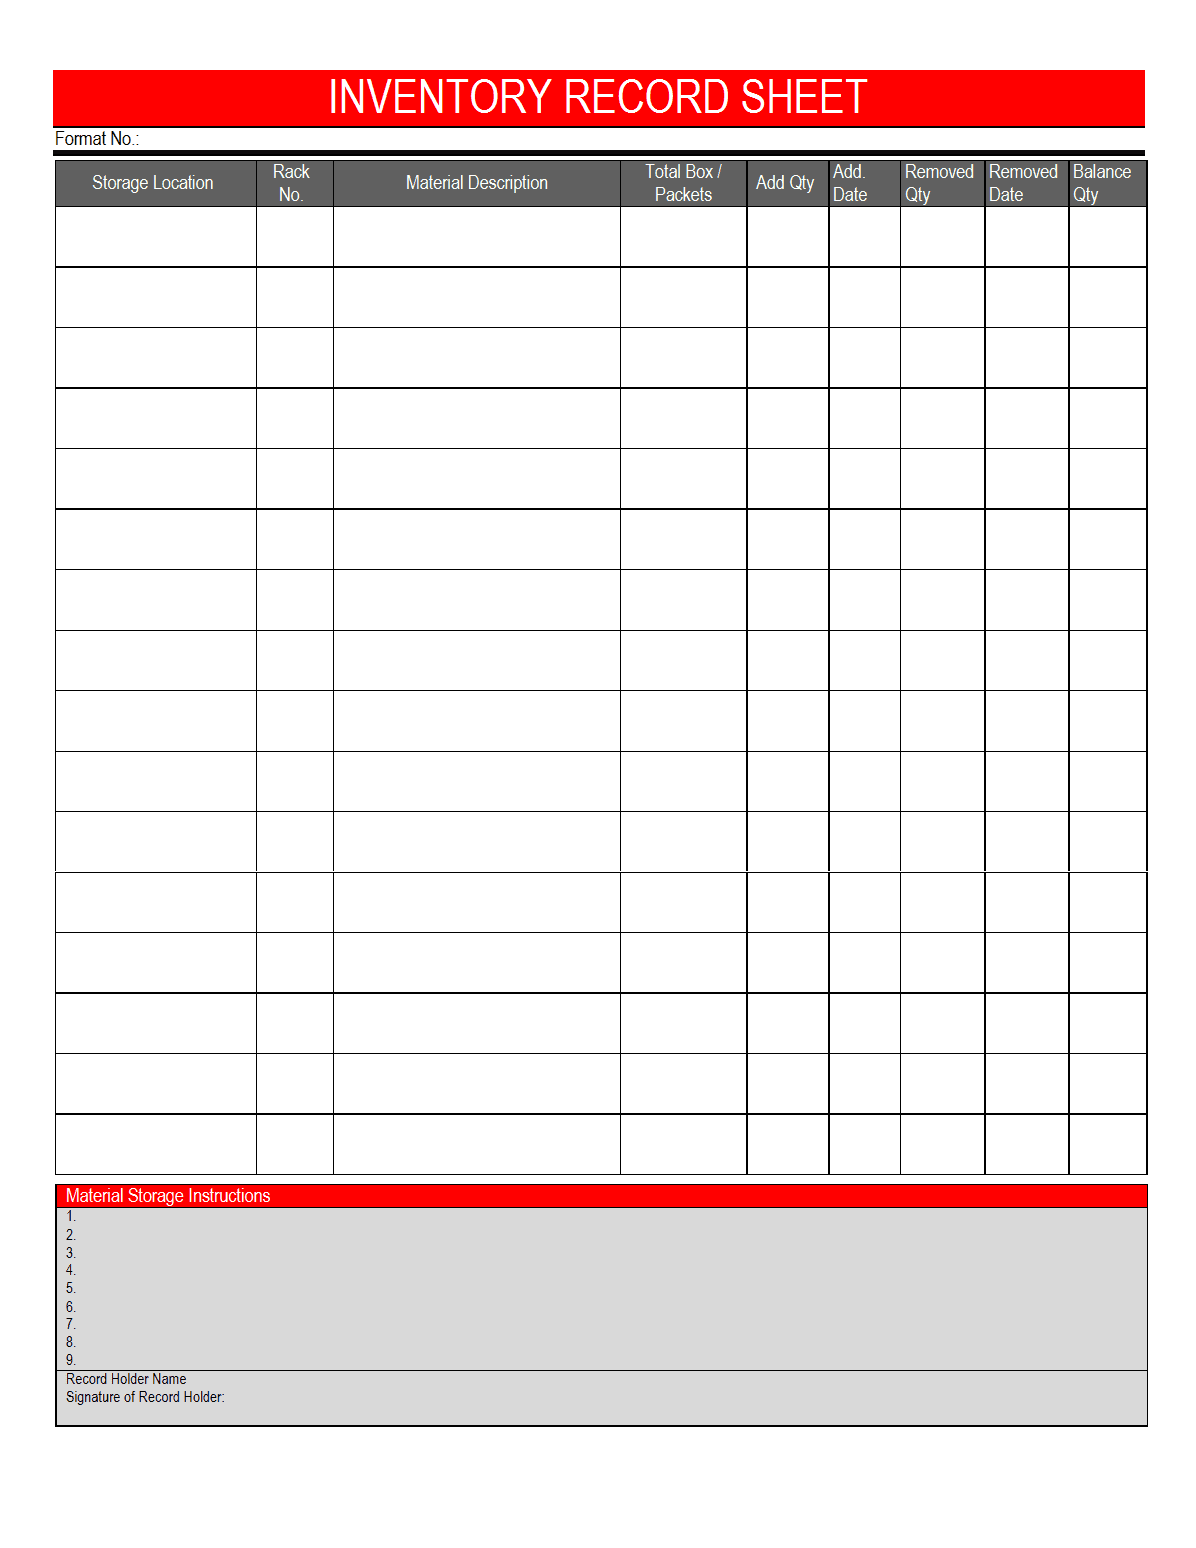 Equipment Inventory Template Inventory Spreadsheet Template Free Spreadsheet Templates for Busines Spreadsheet Templates for Busines Free Stock Inventory Software Excel